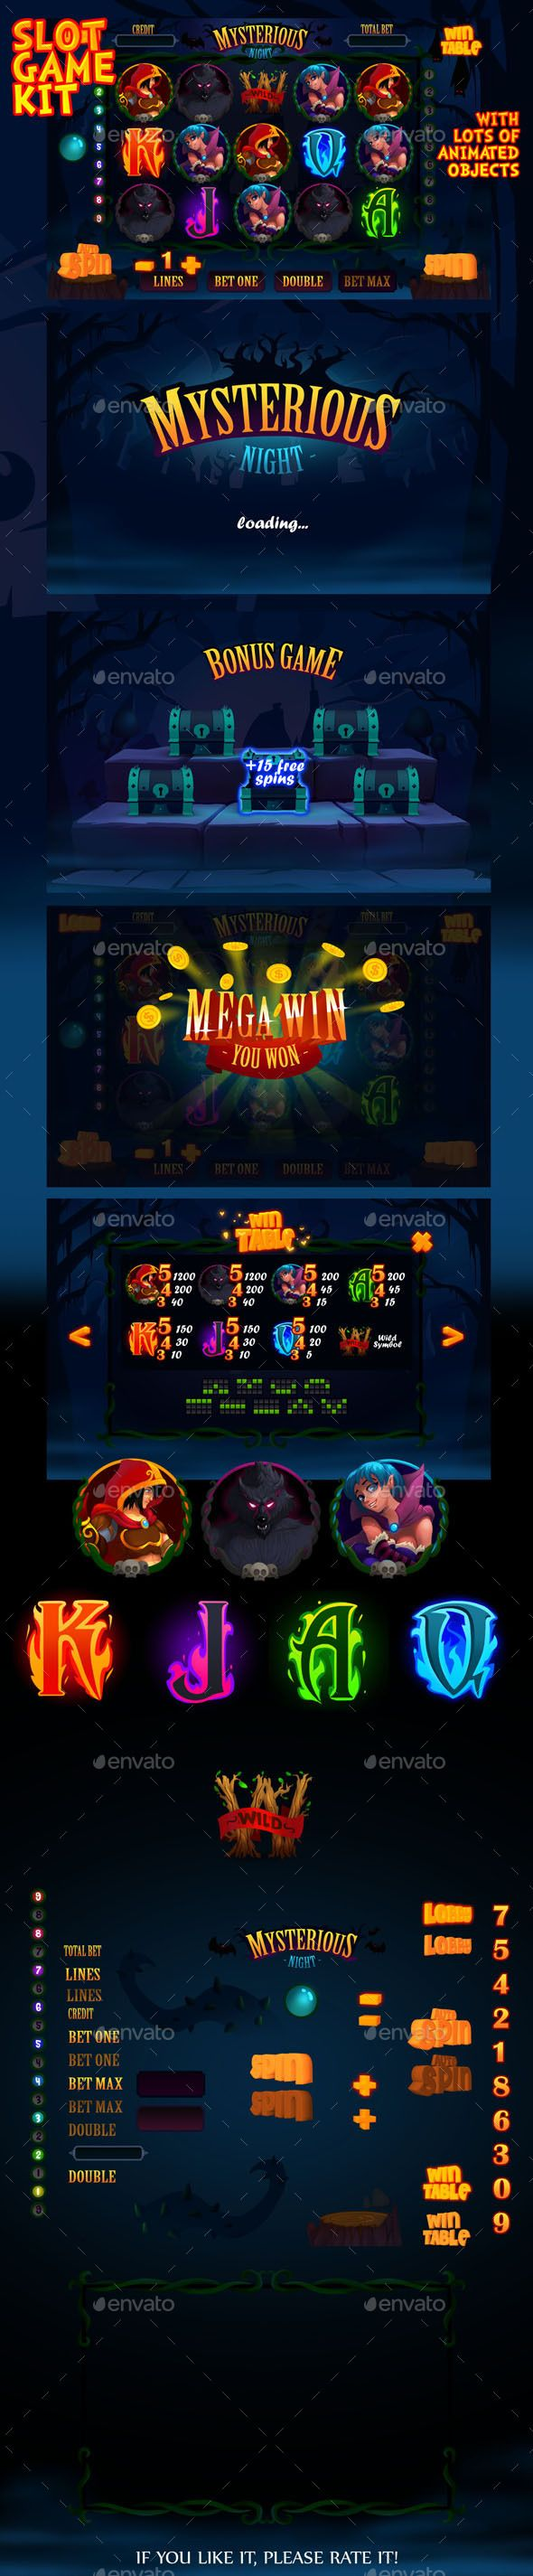 Mysterious night slot game kit — Photoshop PSD #slot machine #kit • Available here → https://graphicriver.net/item/mysterious-night-slot-game-kit/13220819?ref=pxcr